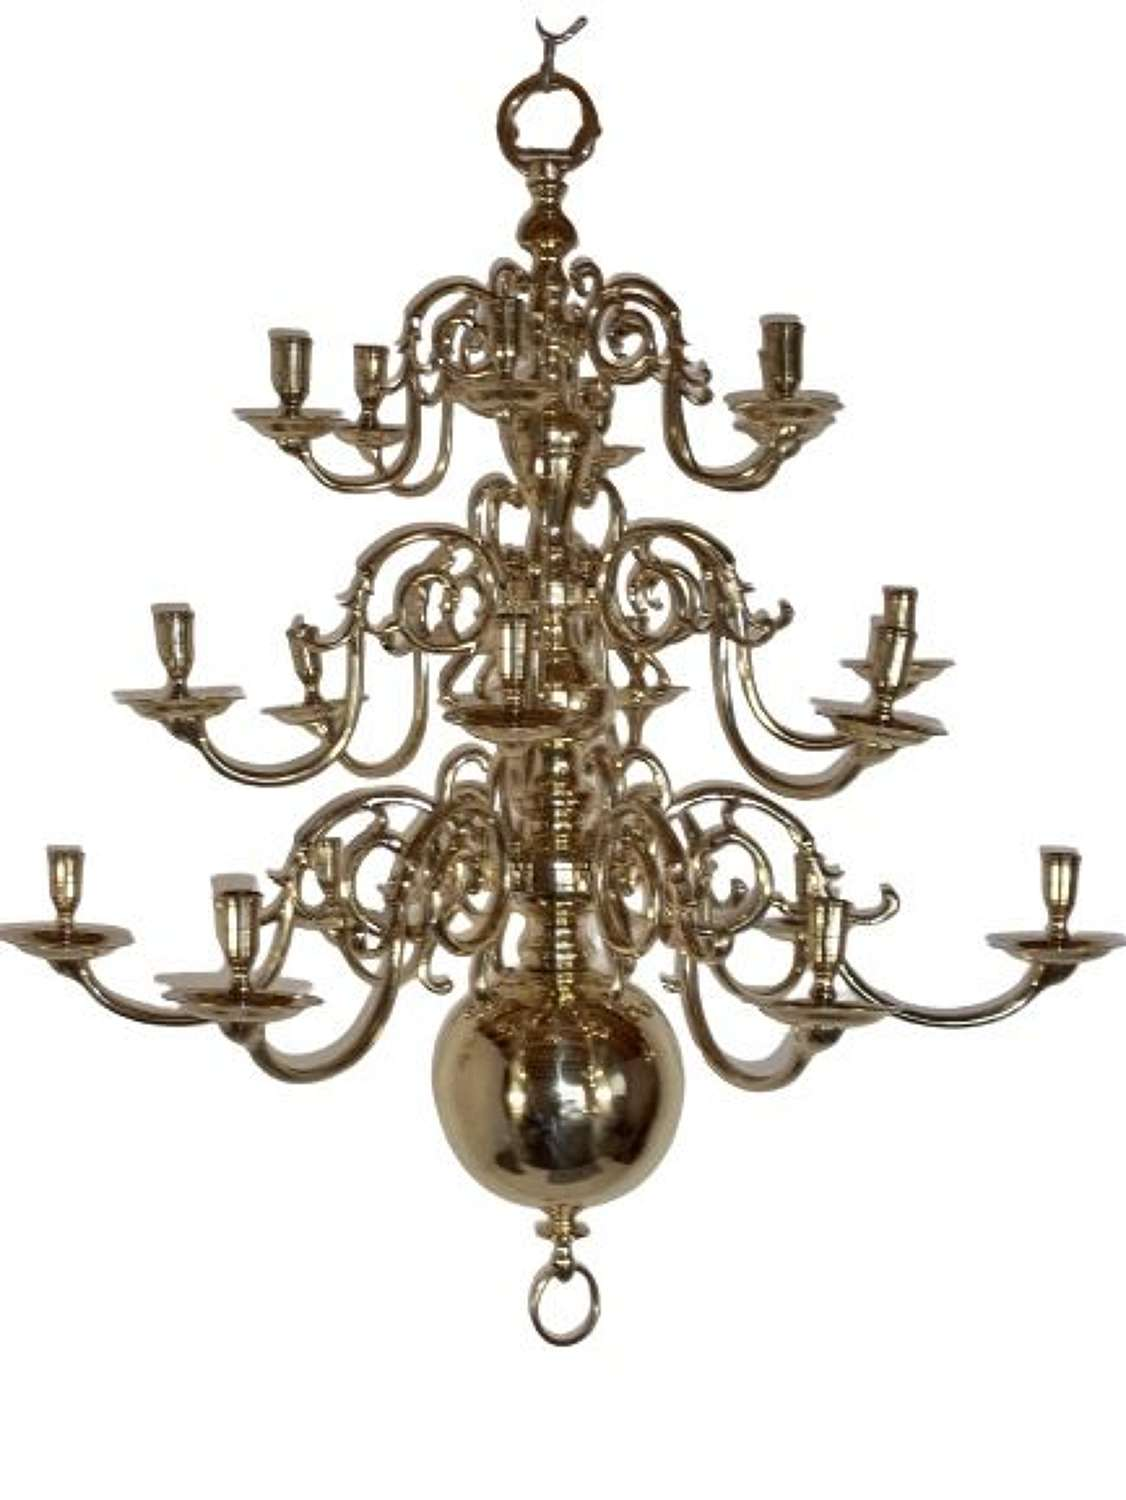 Large 18-branch Chandelier